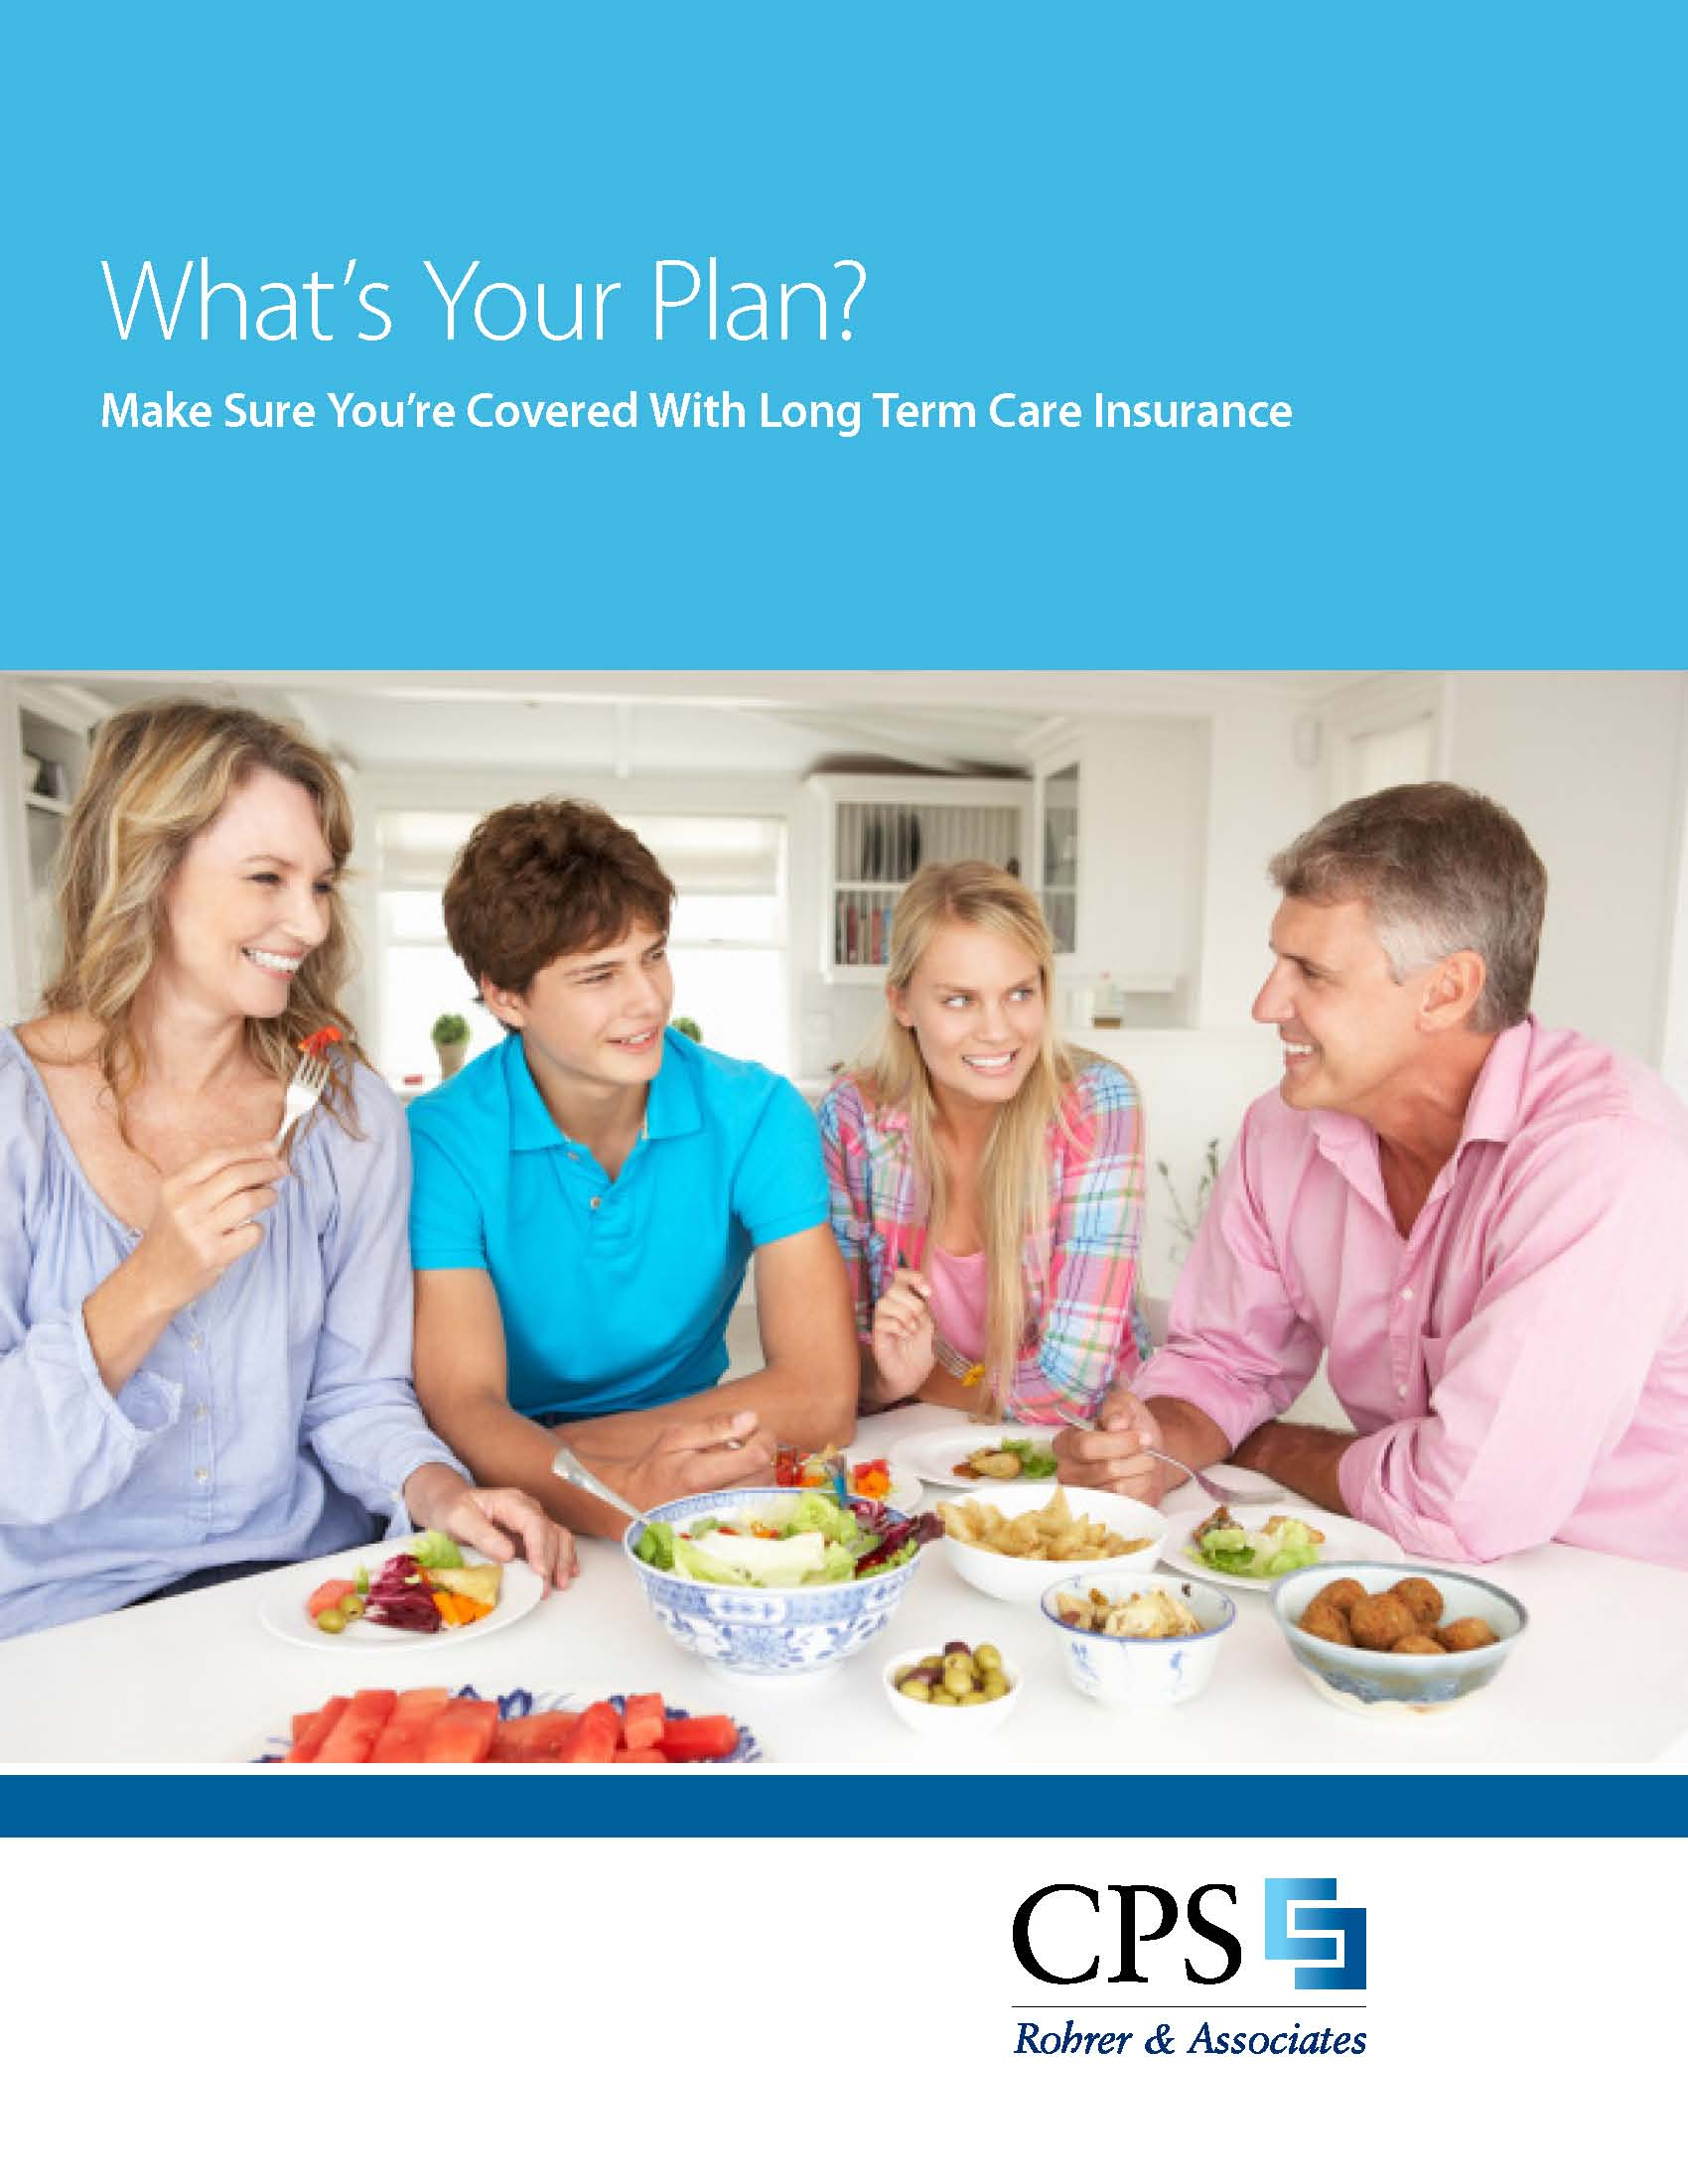 LTC_Whats_Your_Plan_Page_1